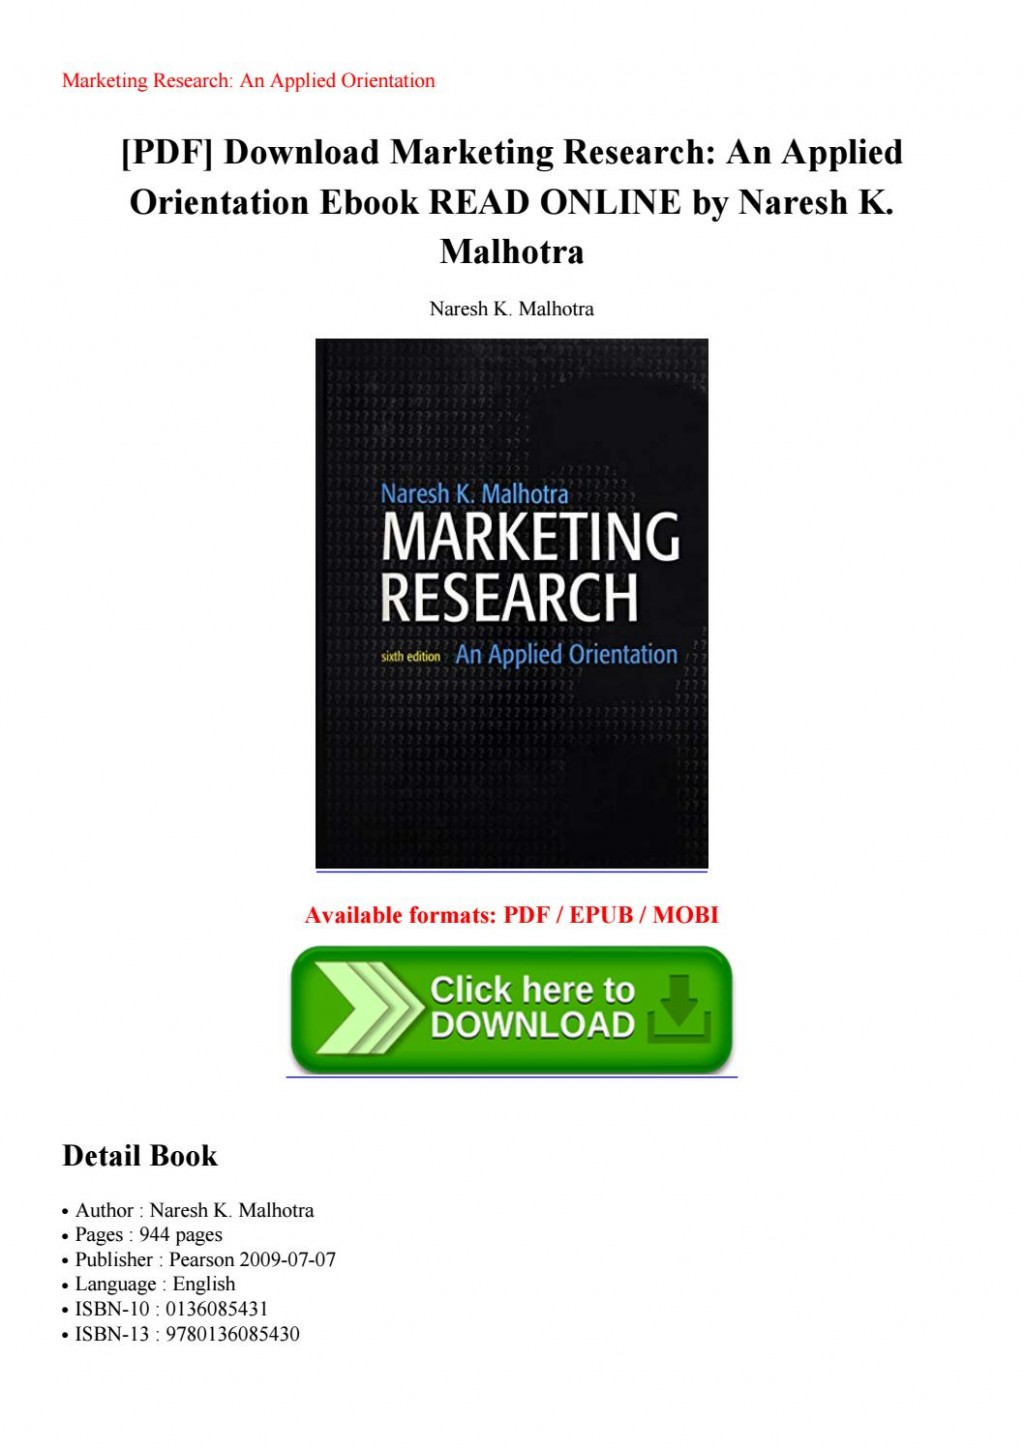 022 Page 1 Marketing Researchs Pdf Free Download Impressive Research Papers Large